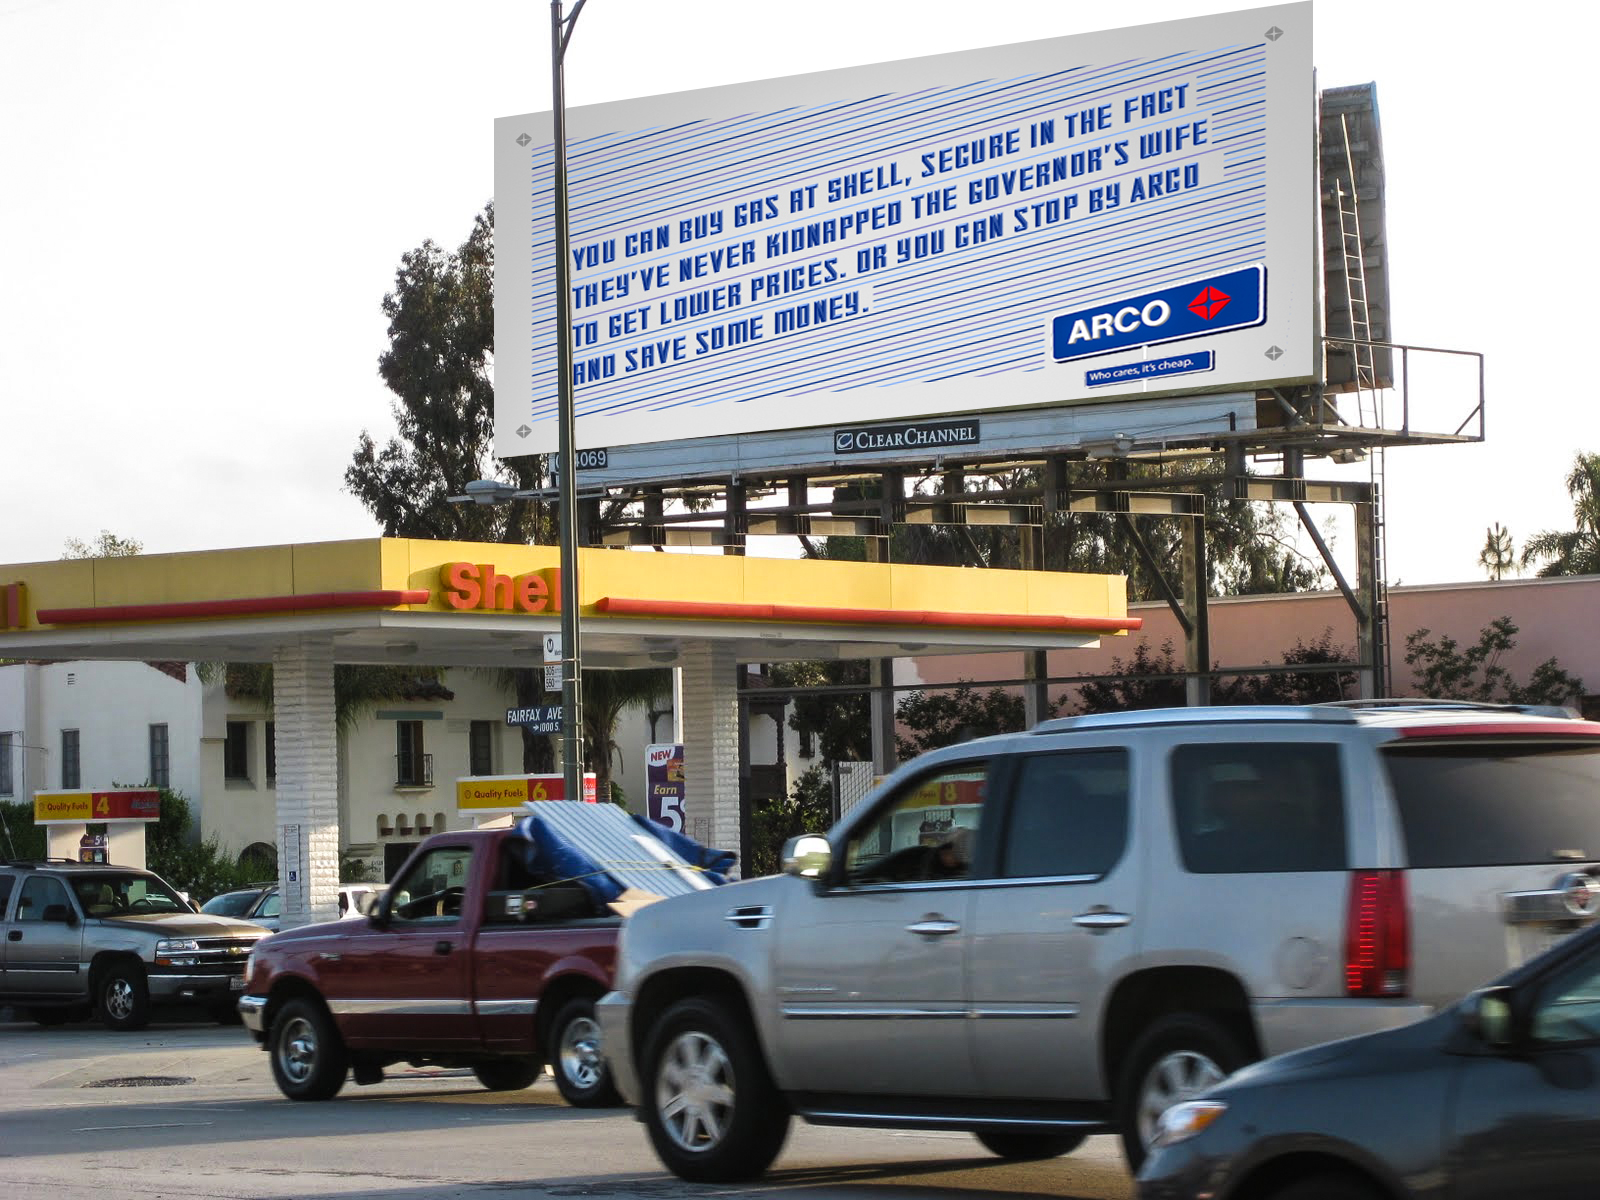 Longer billboards would be placed near competitors' stations to be read while customers were pumping their gas.